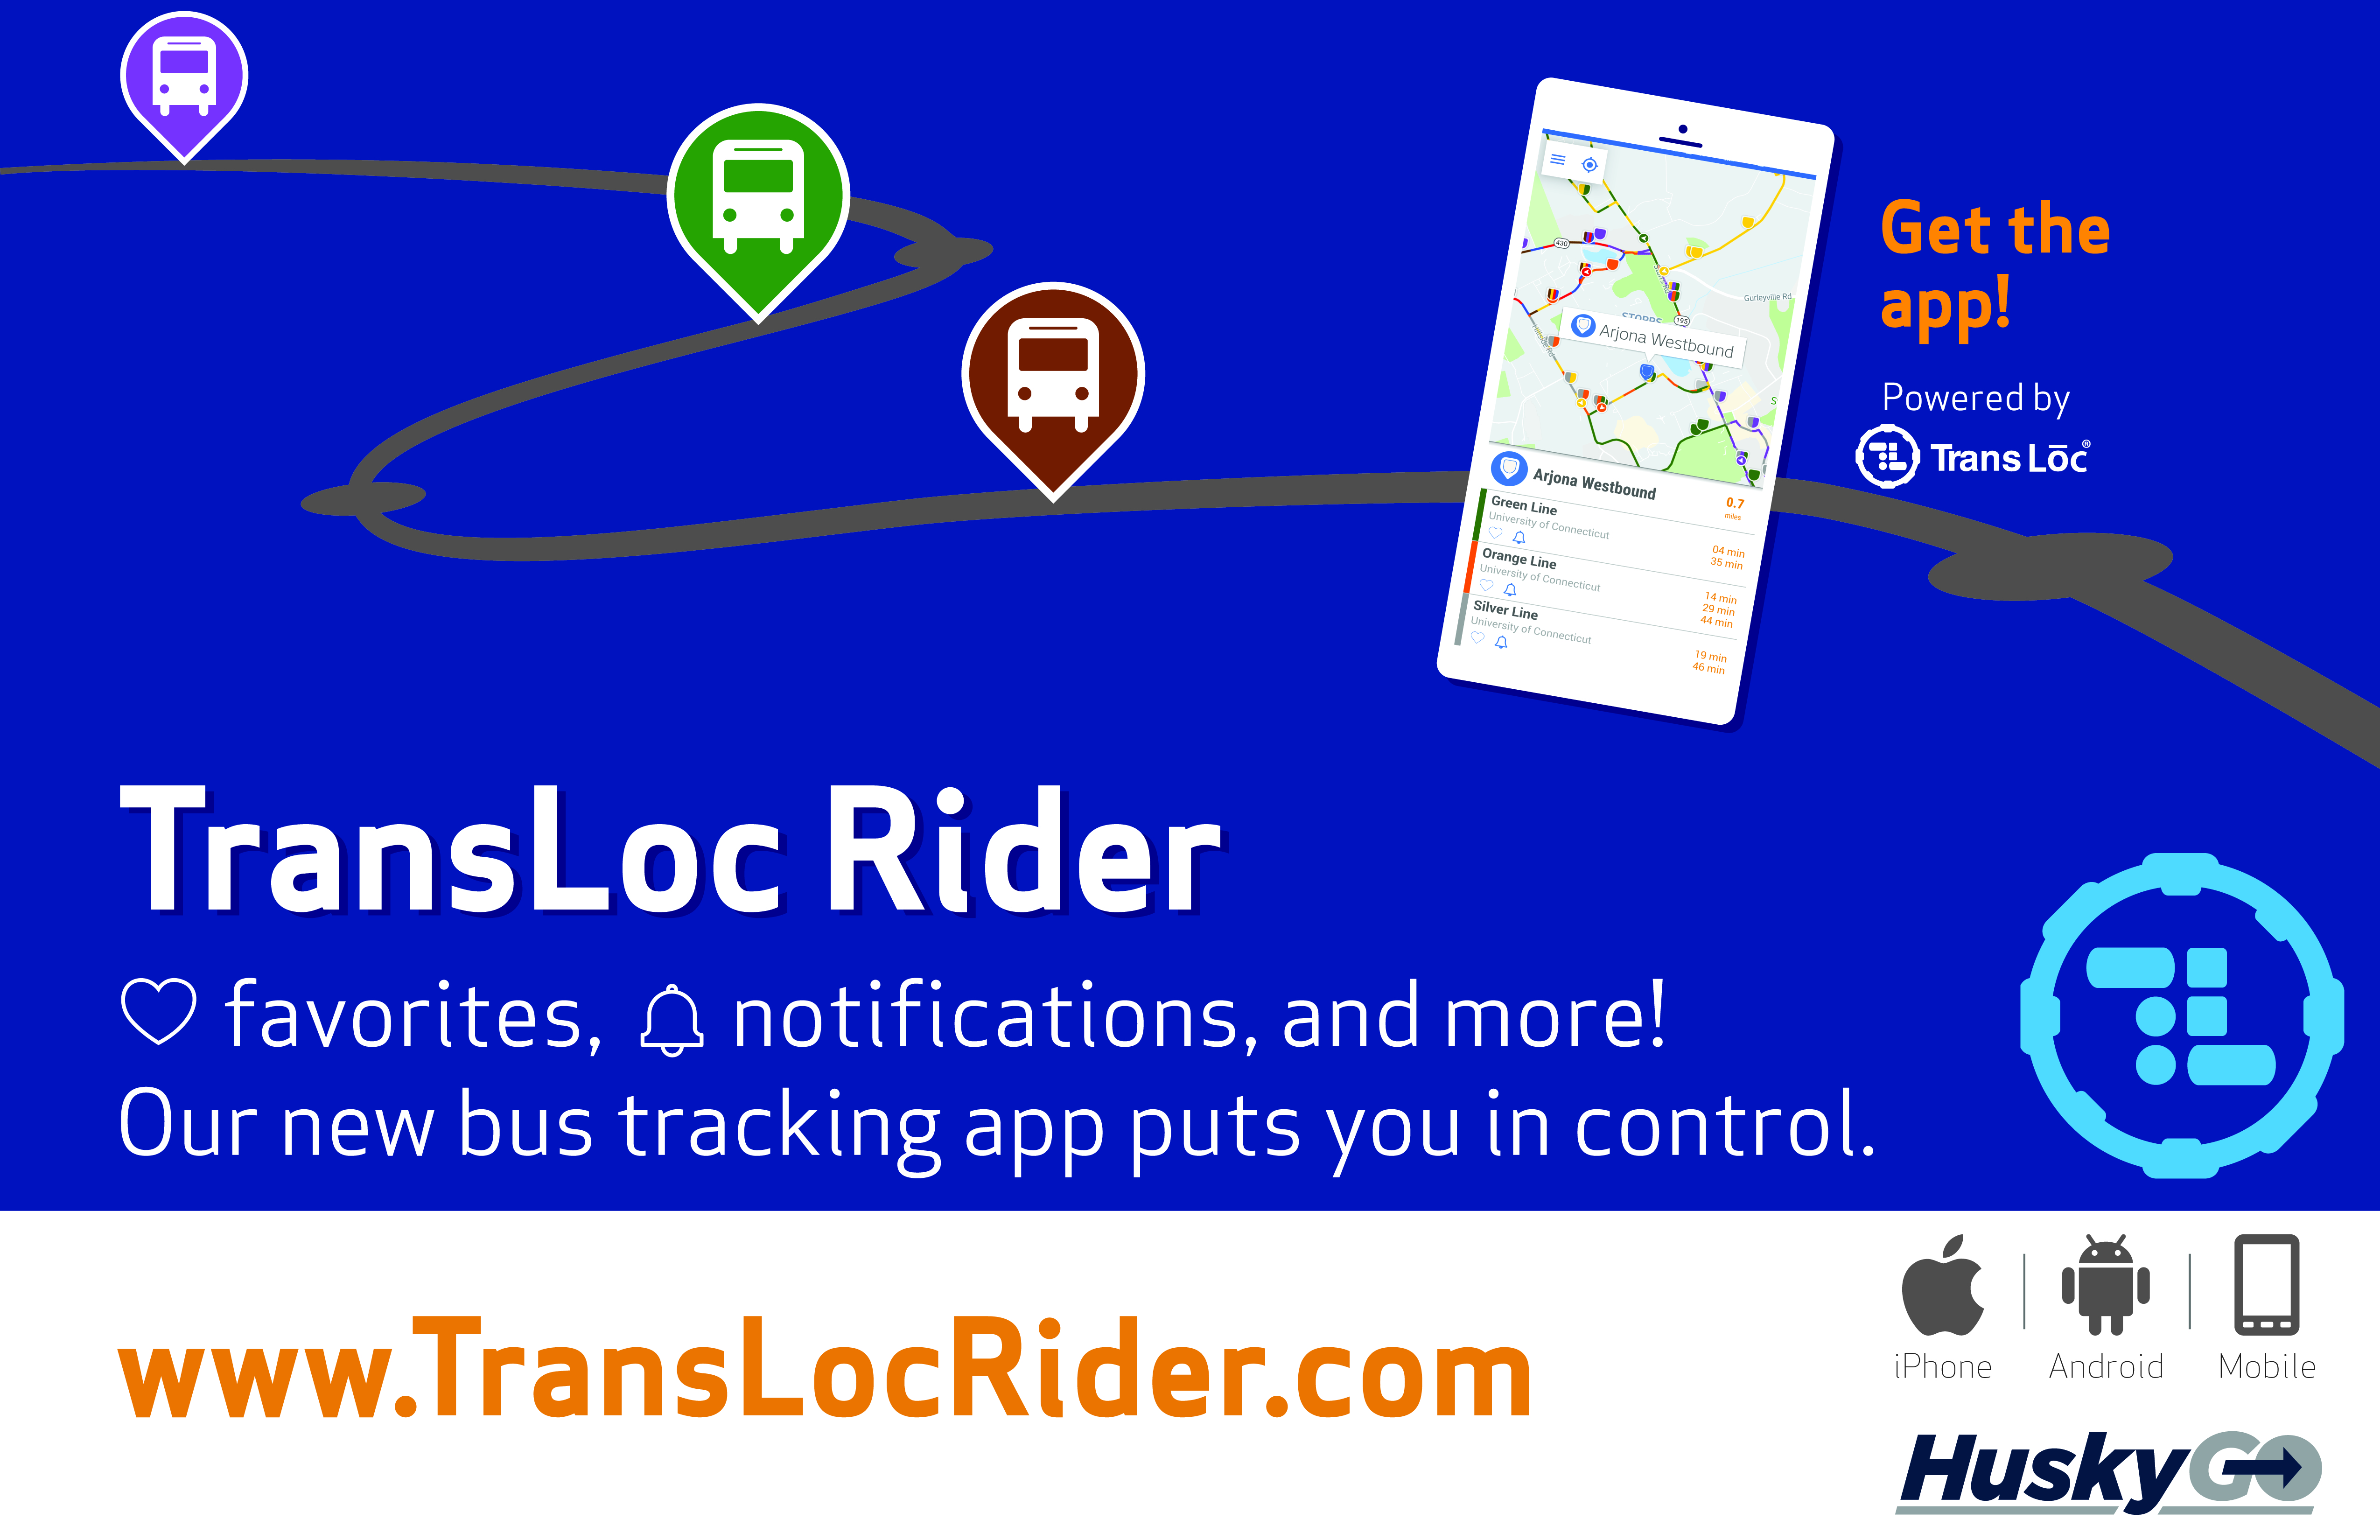 New GPS Bus Tracking App - Press Release - 2/26/2019